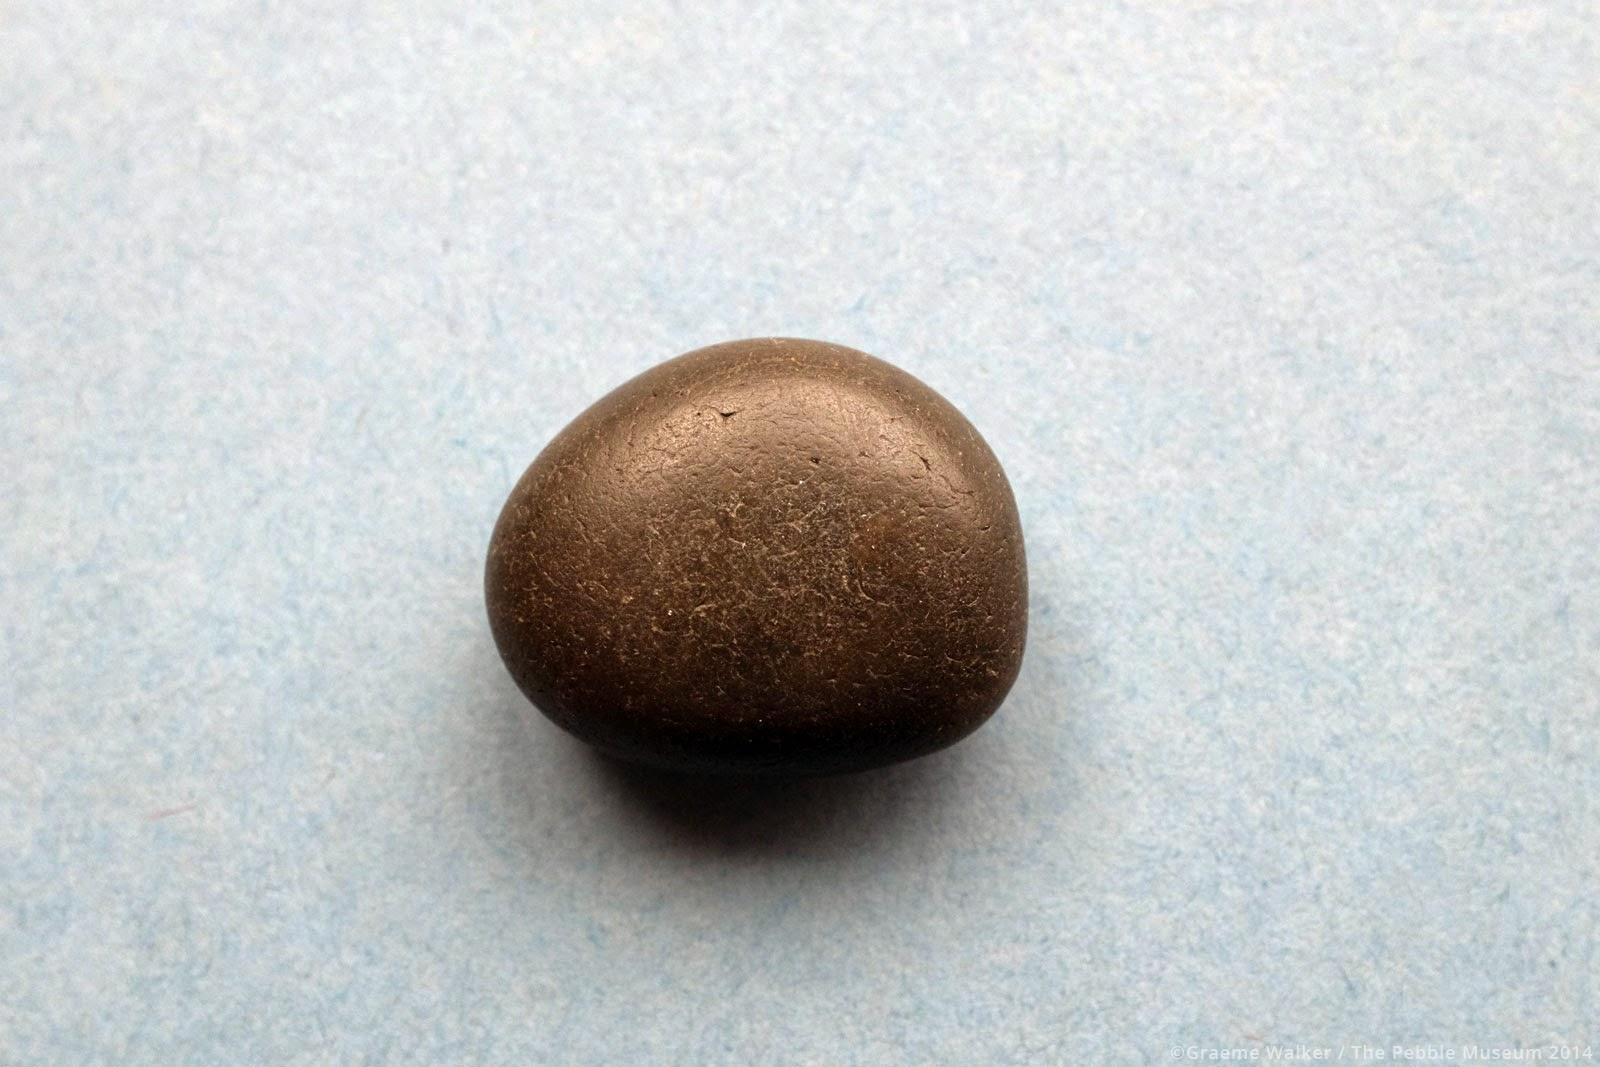 Smooth Black Pebble © Graeme Walker / The Pebble Museum 2019